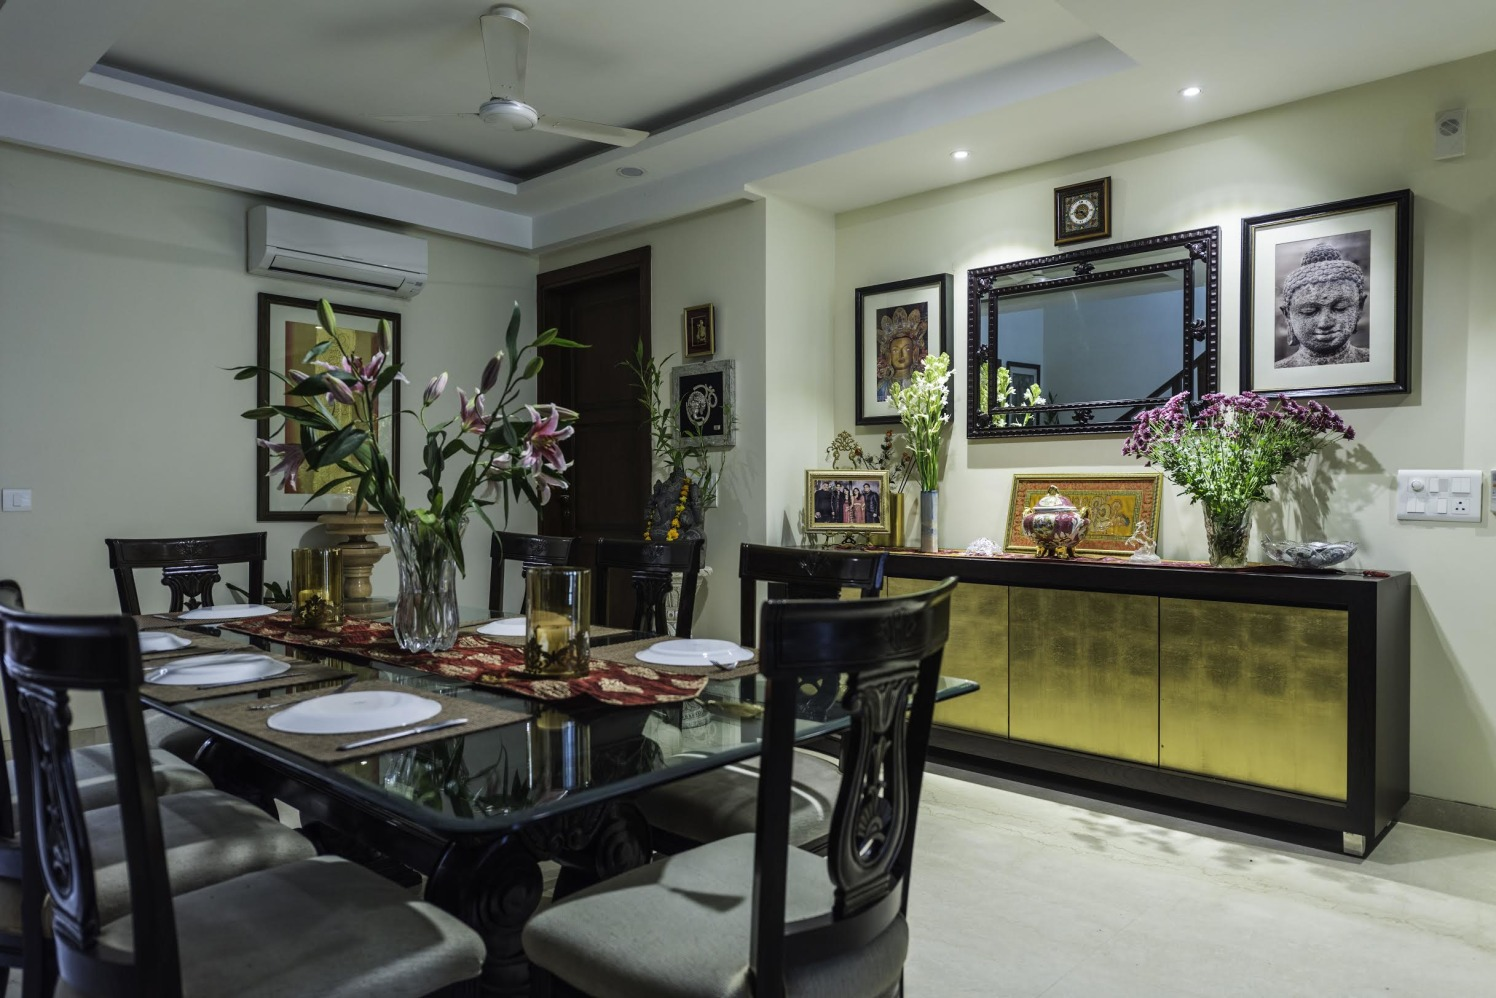 Traditional Dining Space by Vijay Kapur Dining-room Contemporary | Interior Design Photos & Ideas